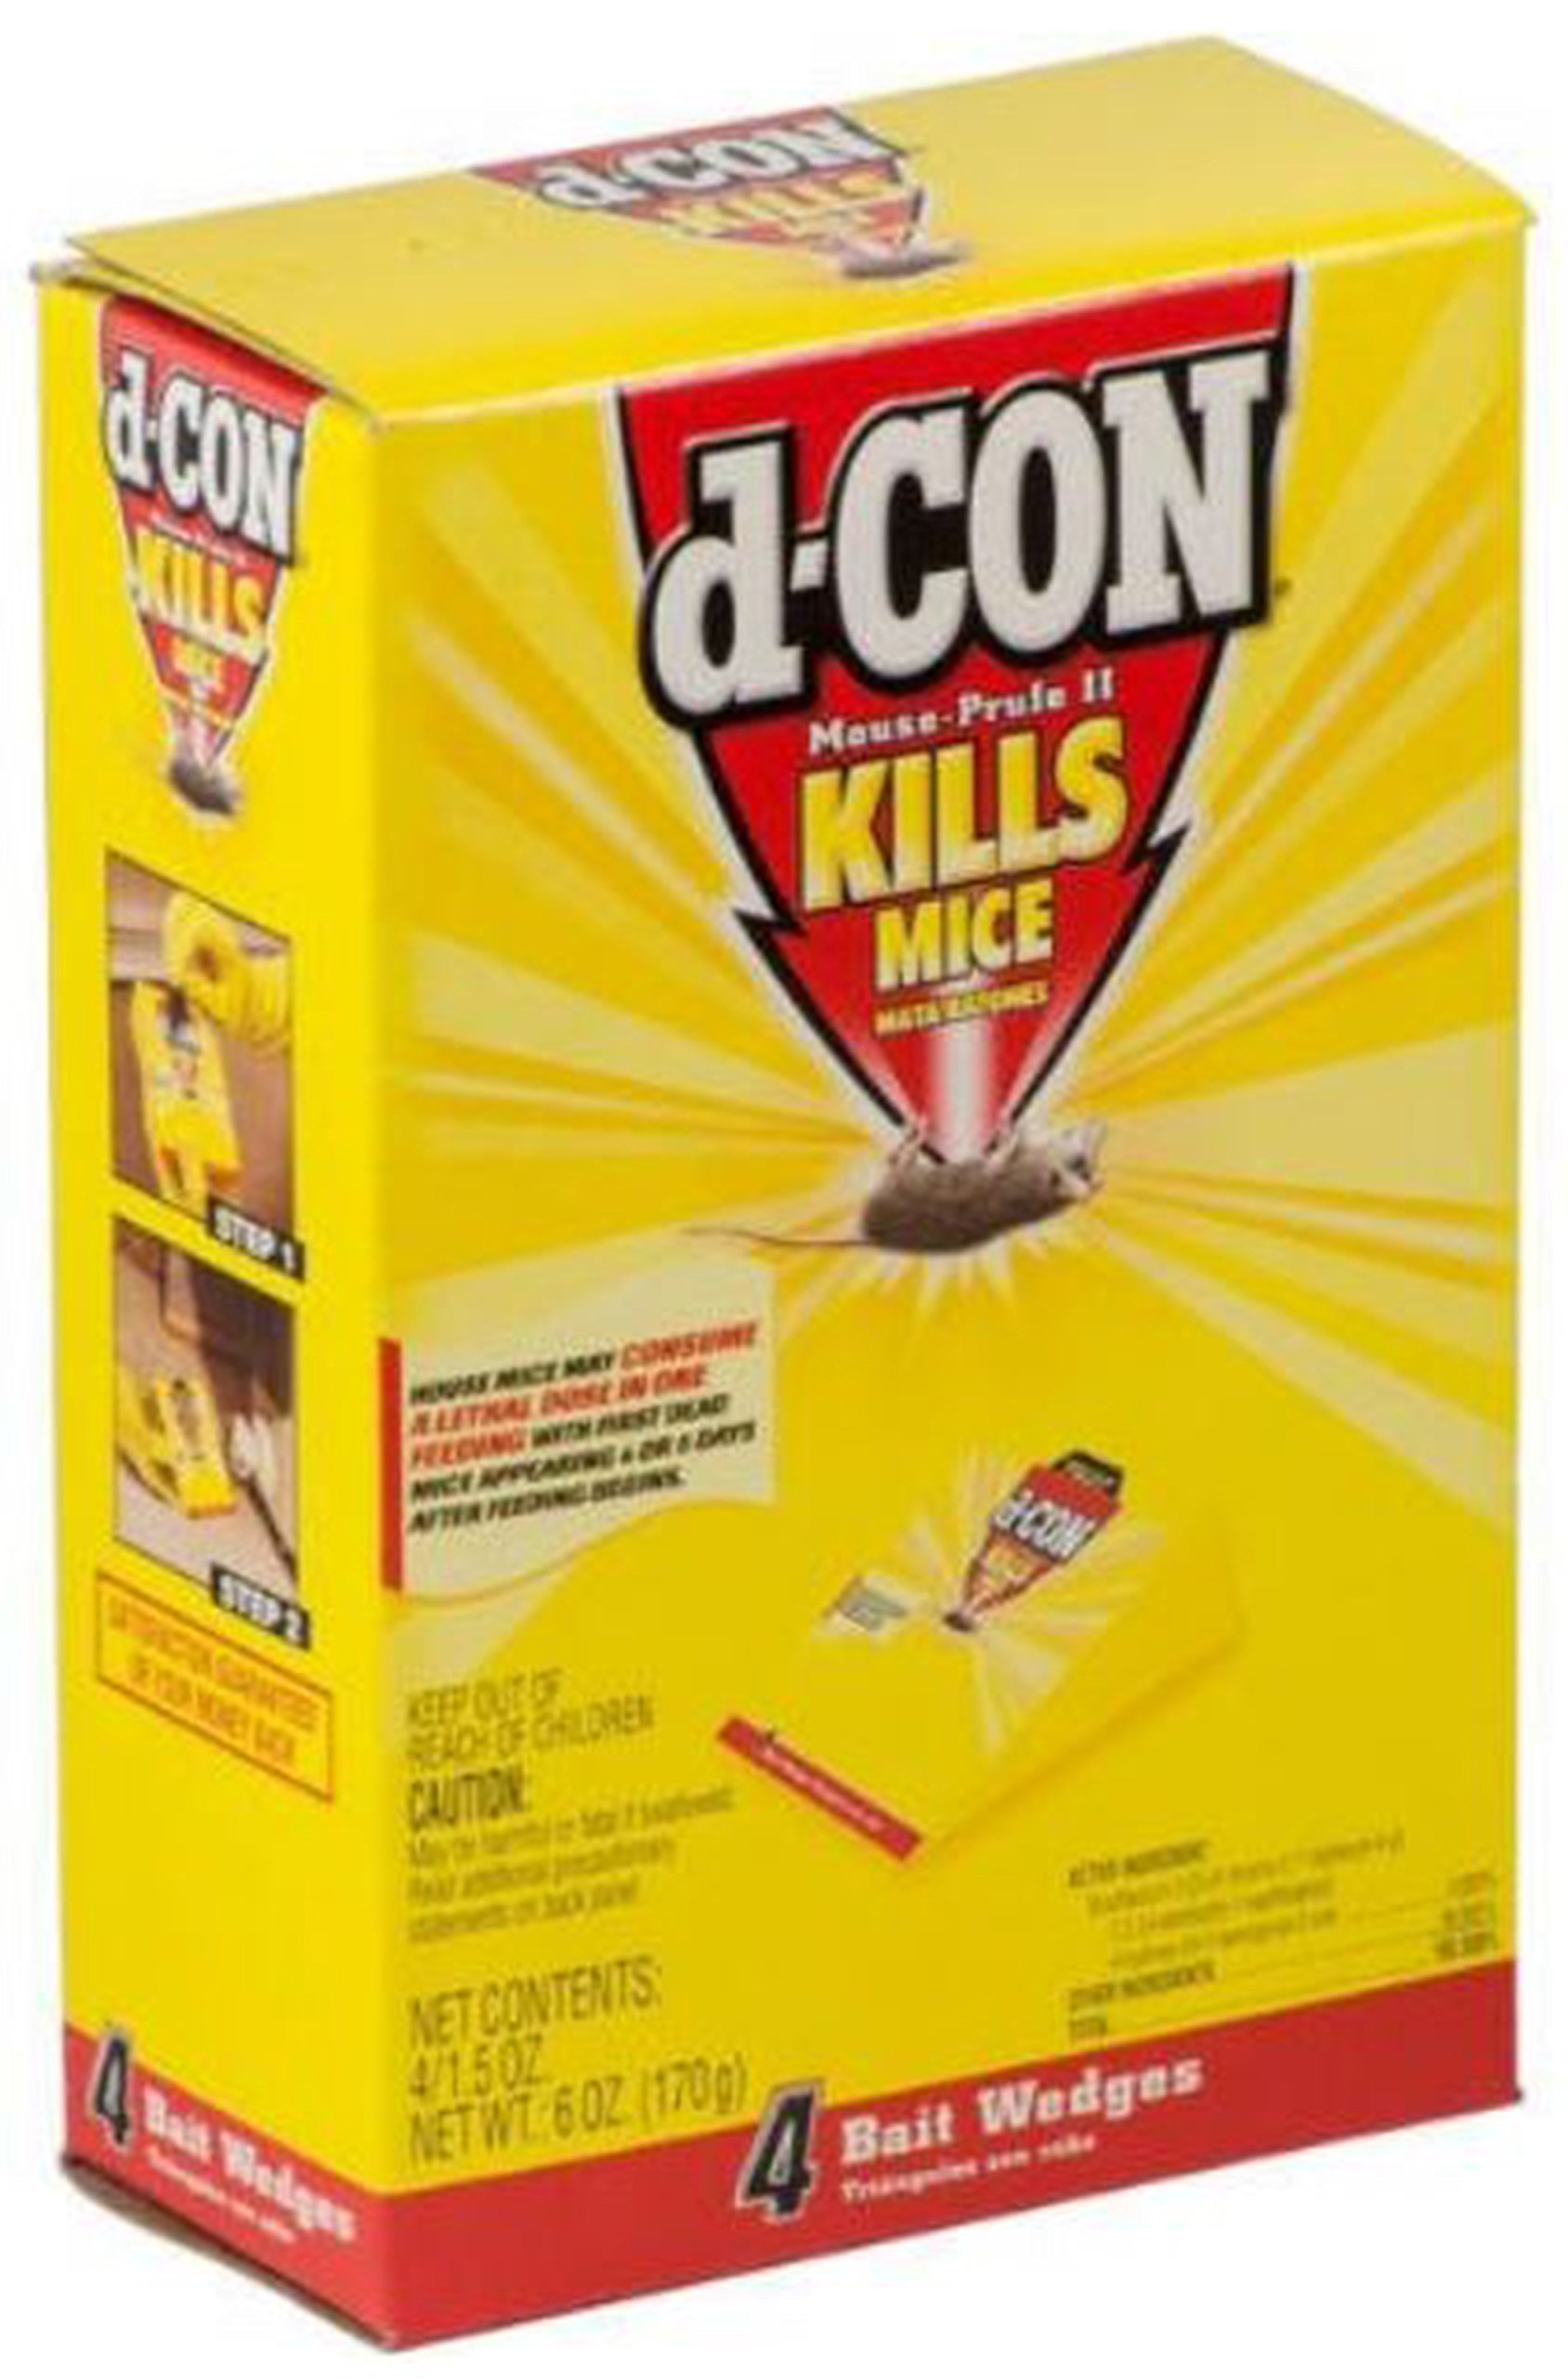 D-Con Mouse Prufe II Multipack 4 Count, 1.5 Ounce Wedges (Pack of 4)